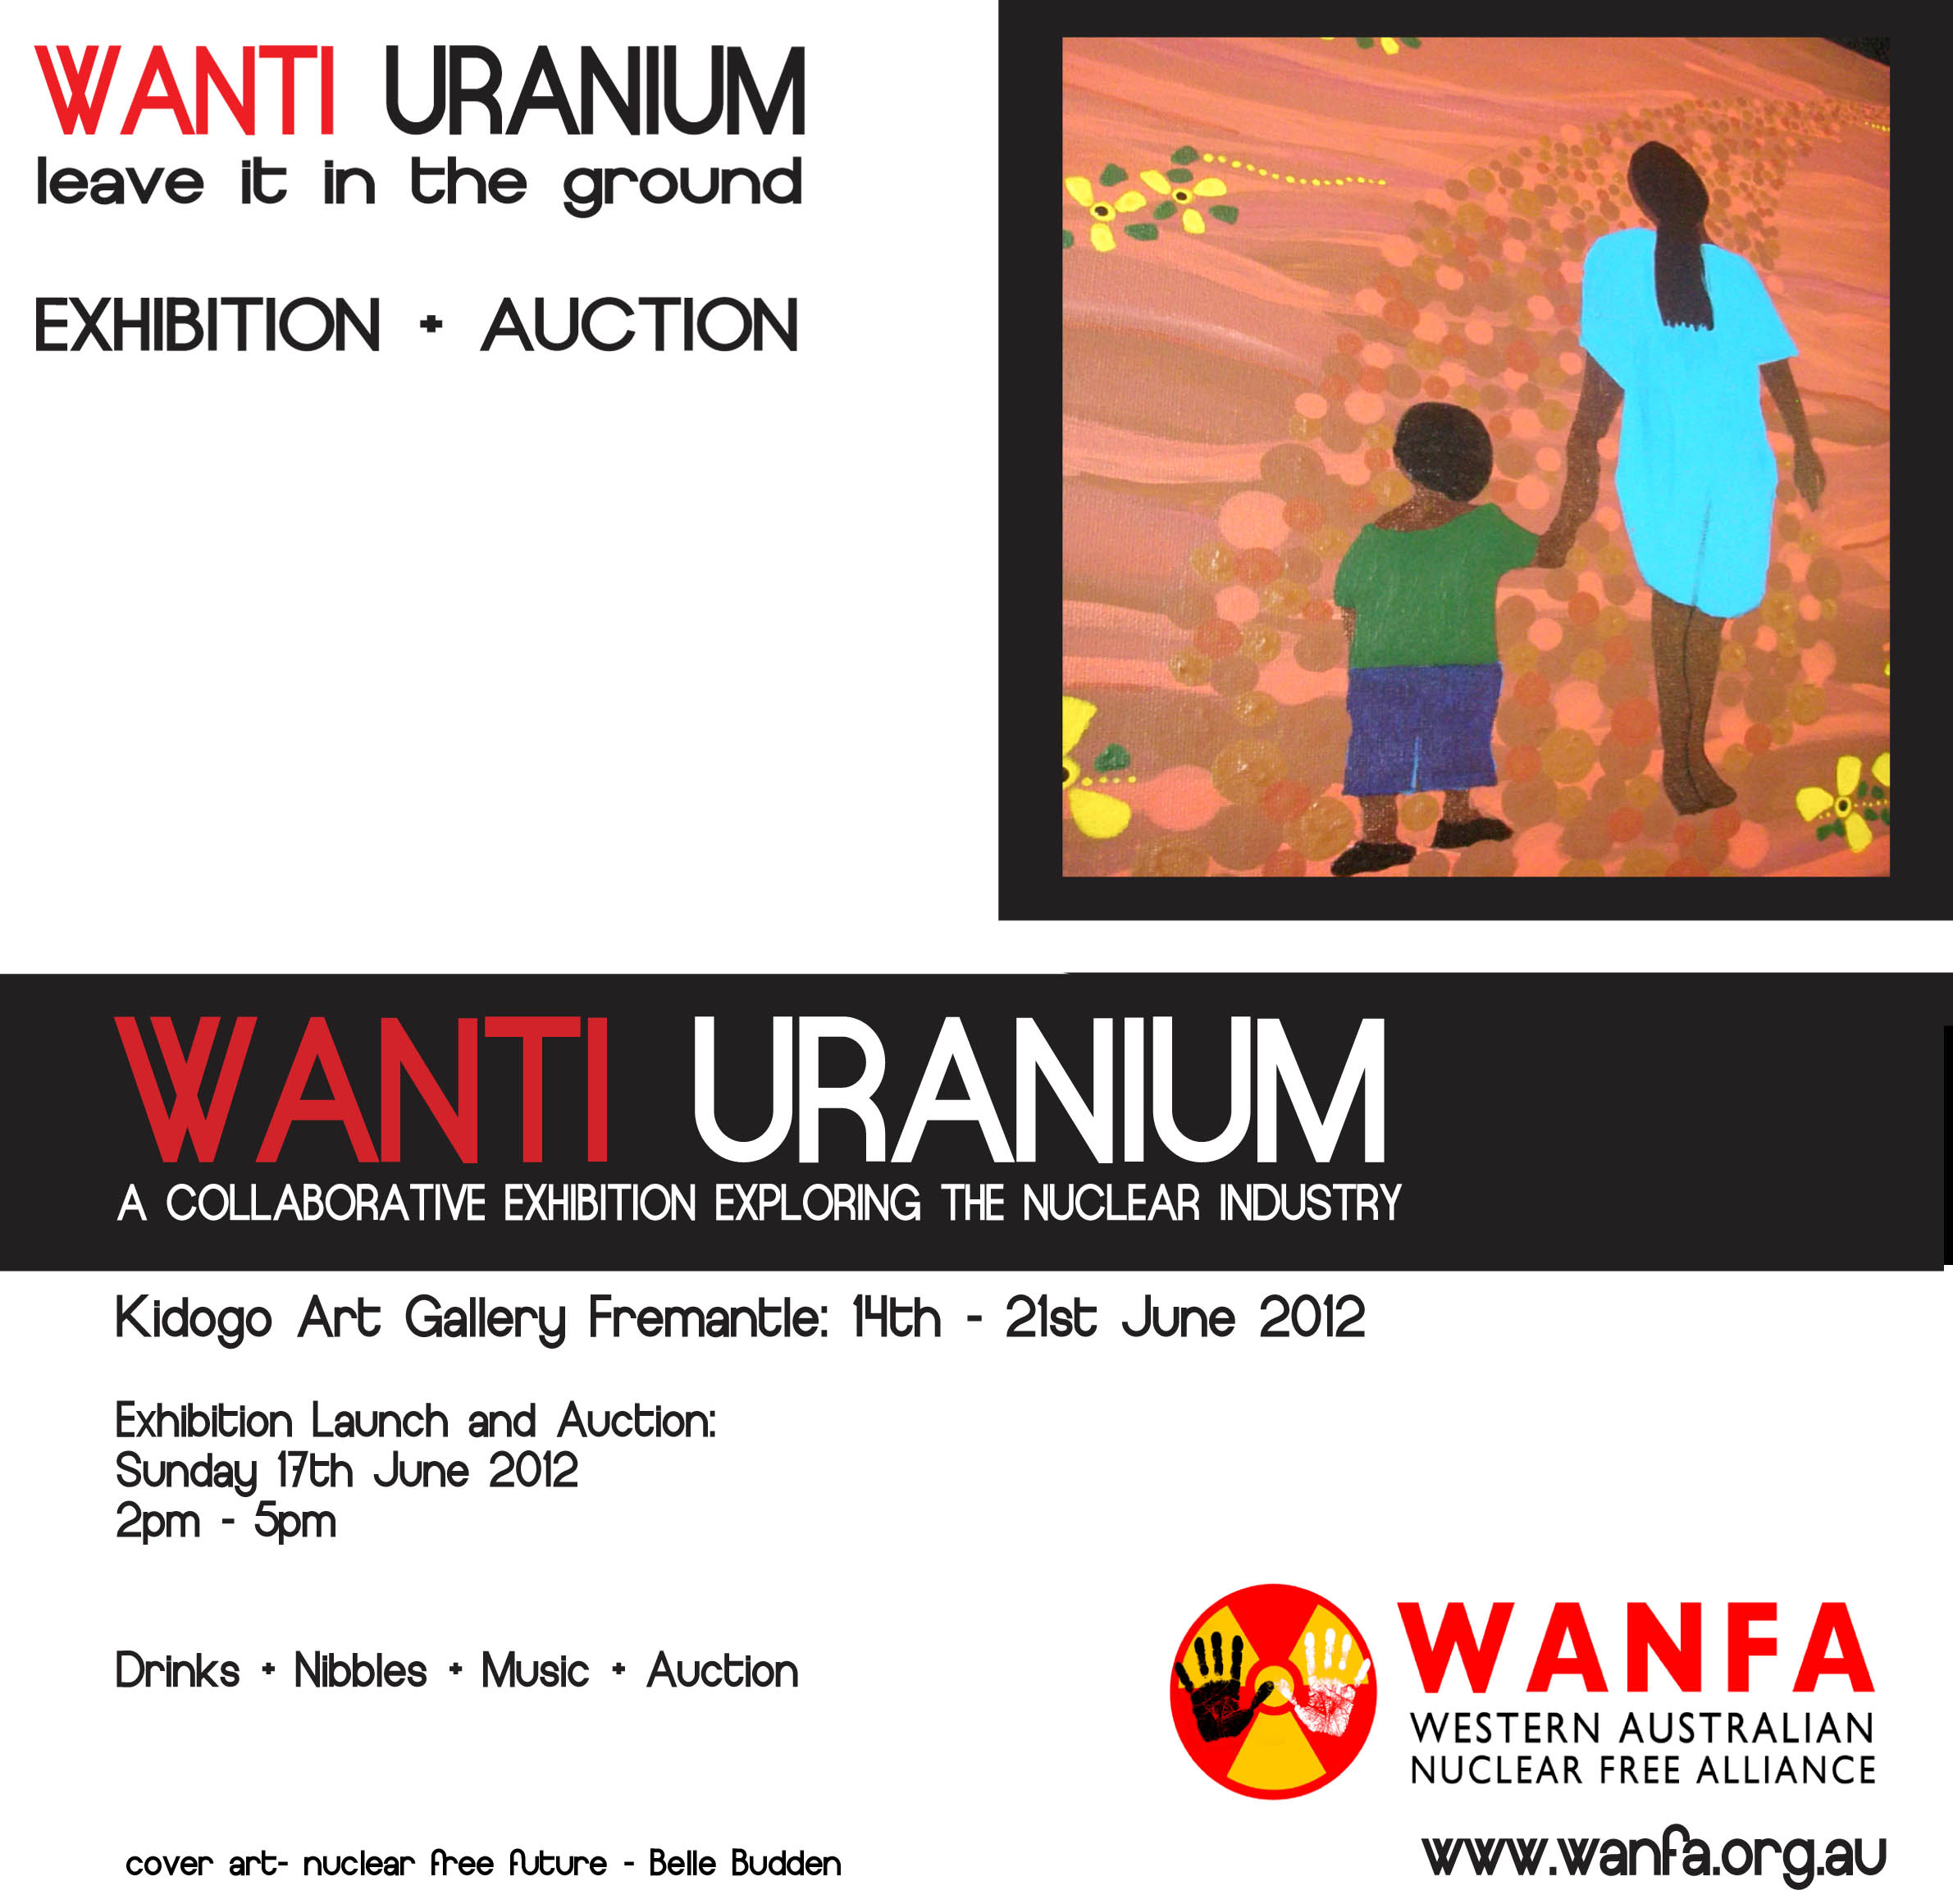 WANTI URANIUM art exhibition + auction SUNDAY 17th JUNE ...